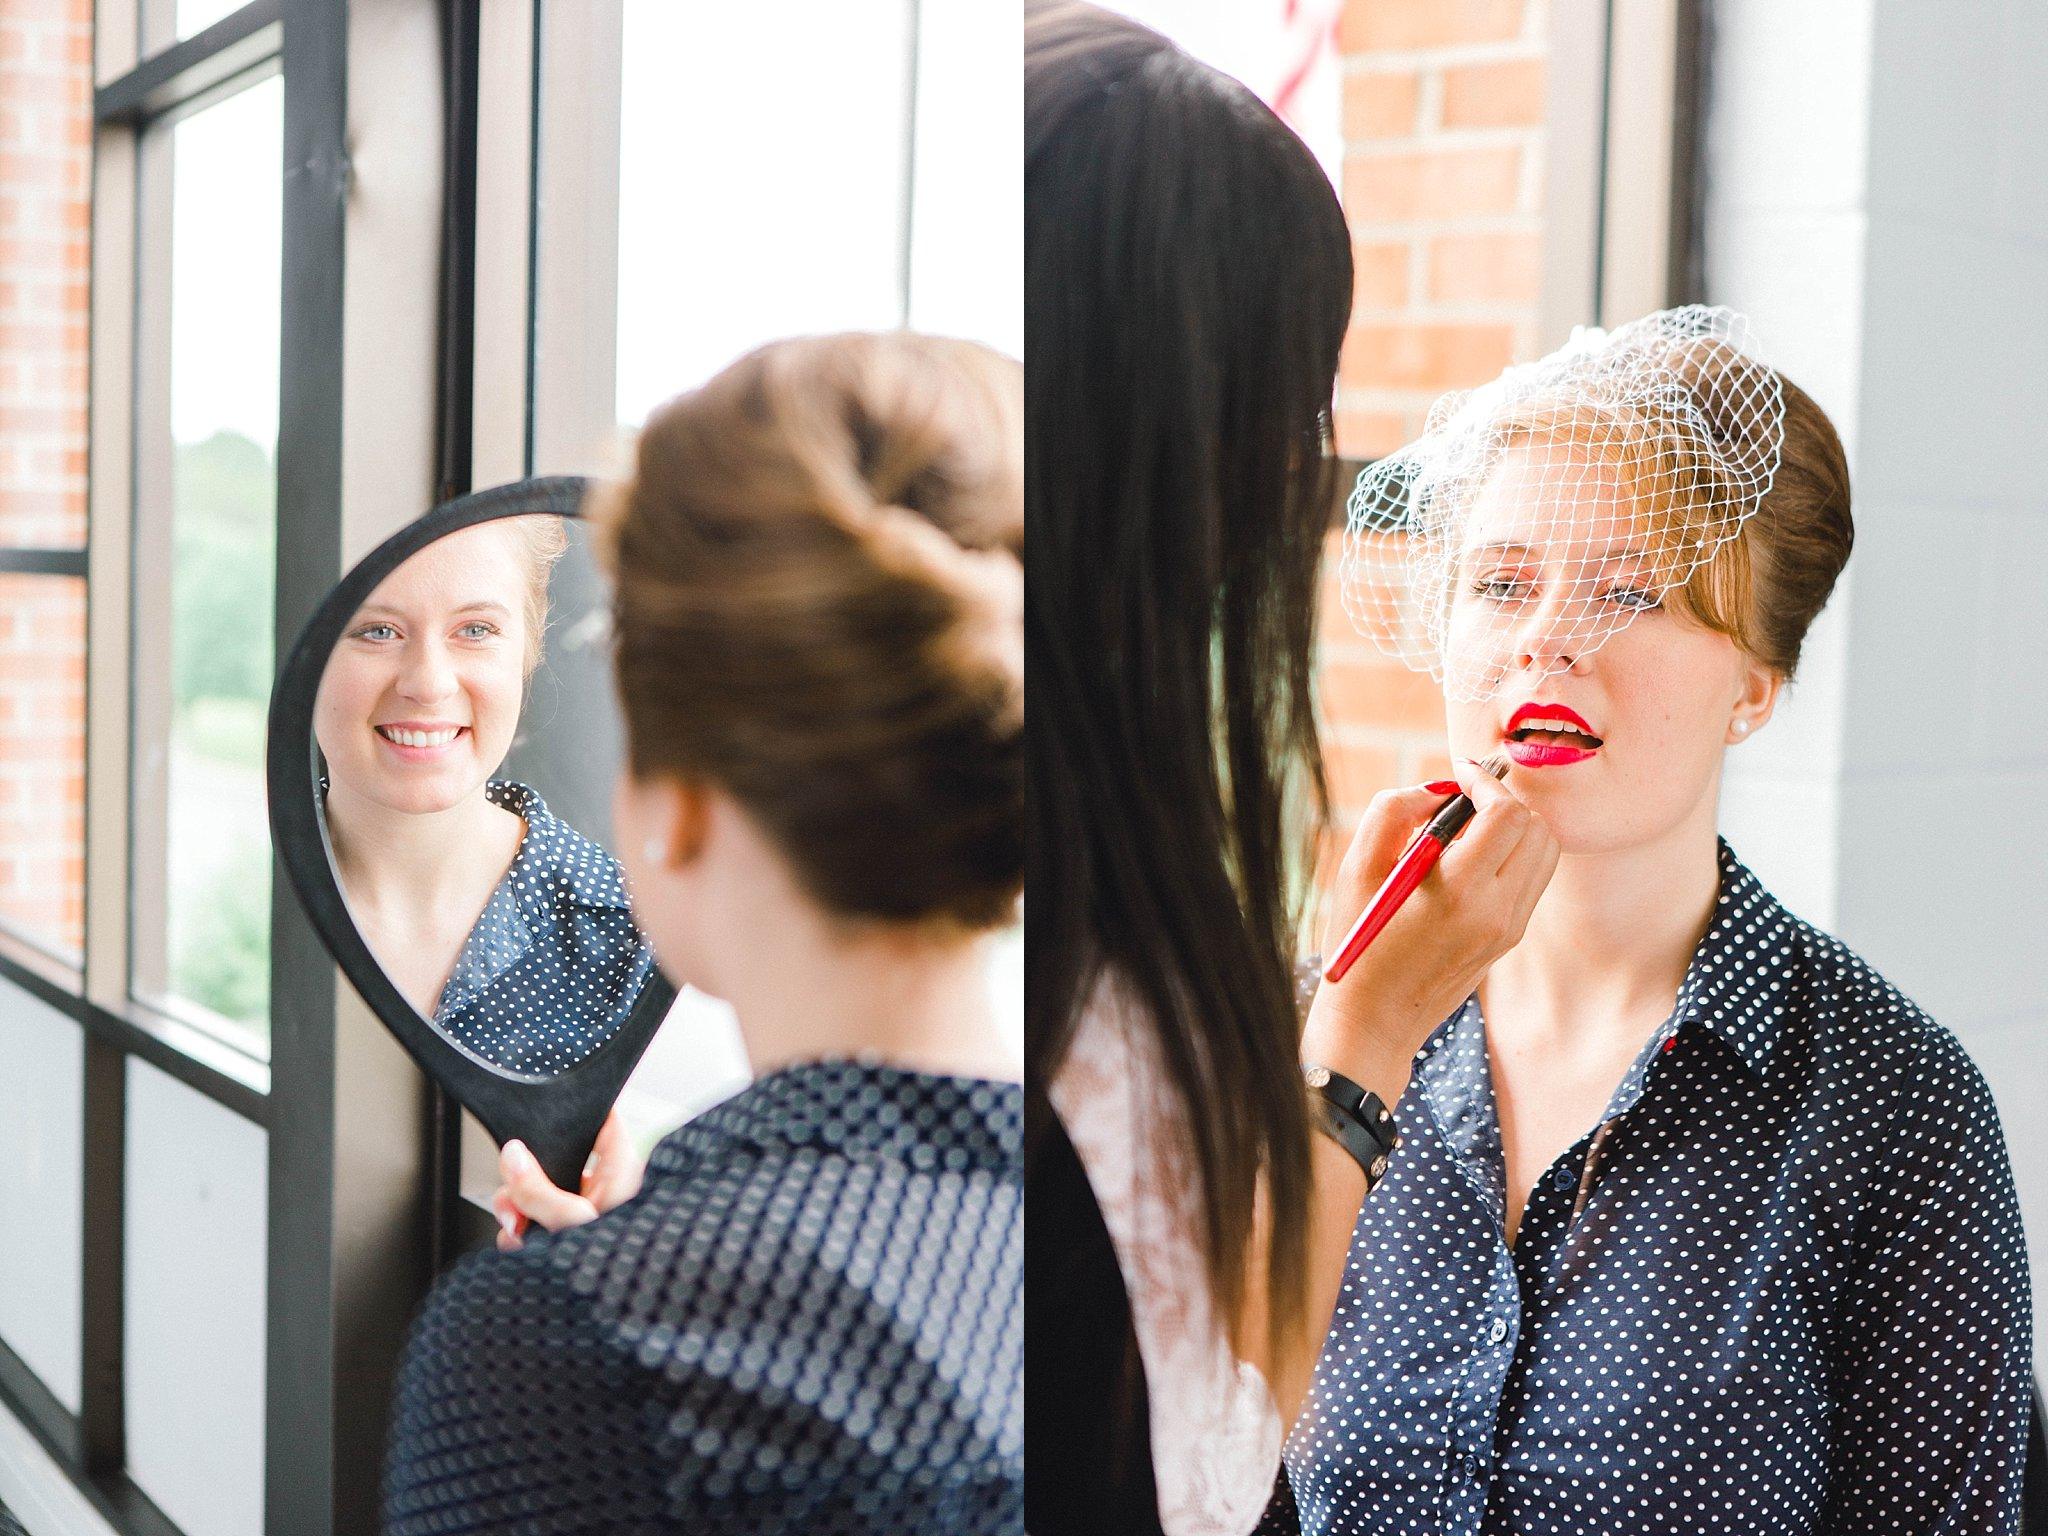 A bride with classic red lipstick getting her makeup done on her wedding day.